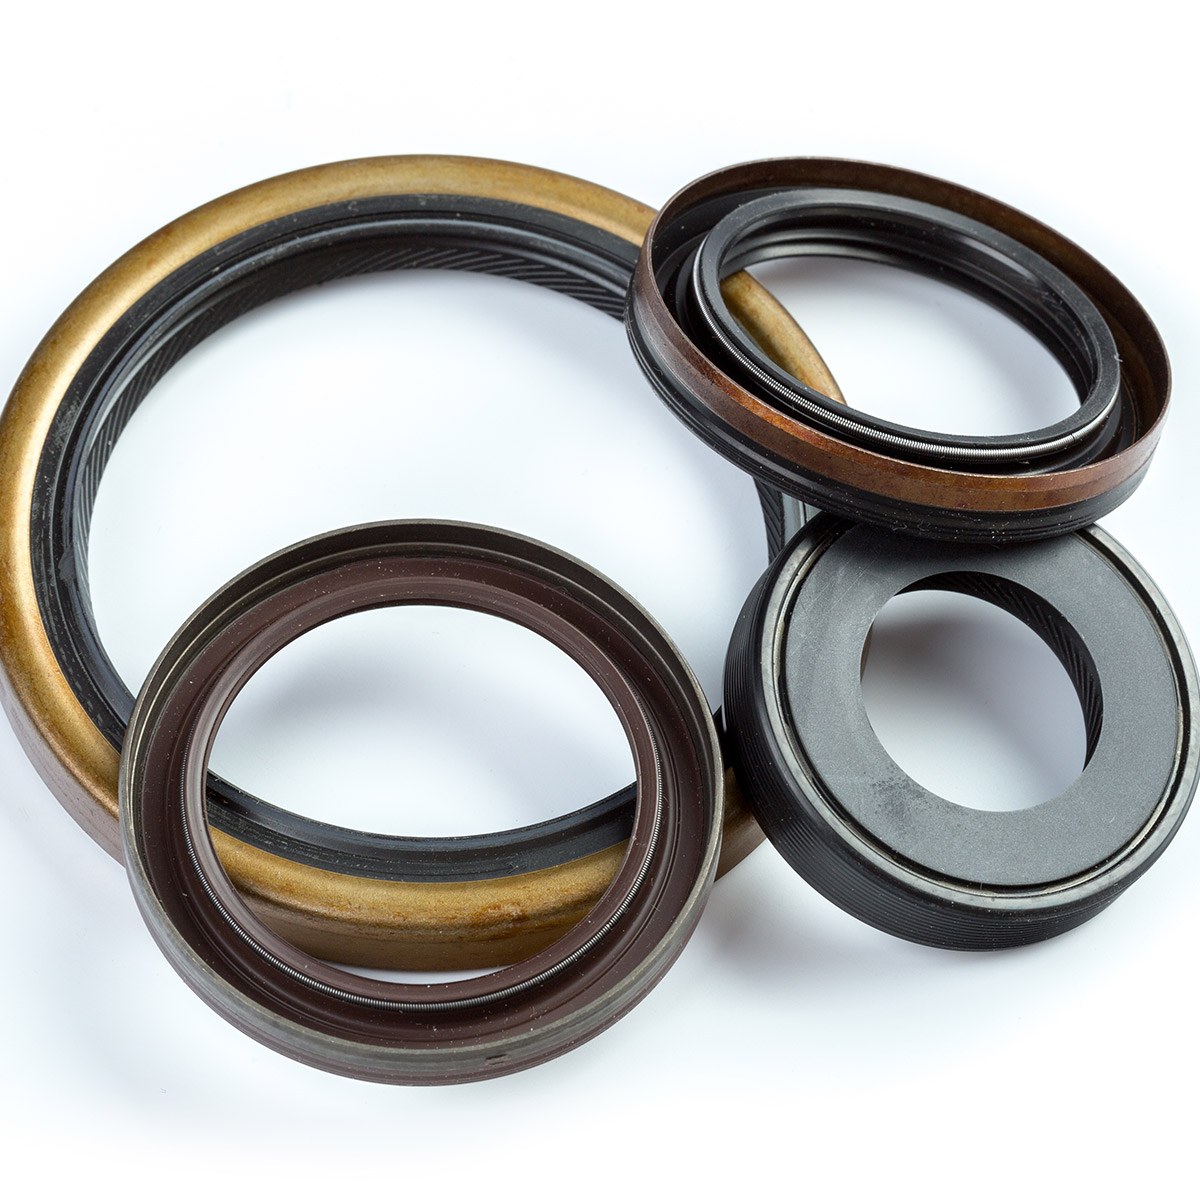 Differential Pinion Seal Replacement Cost